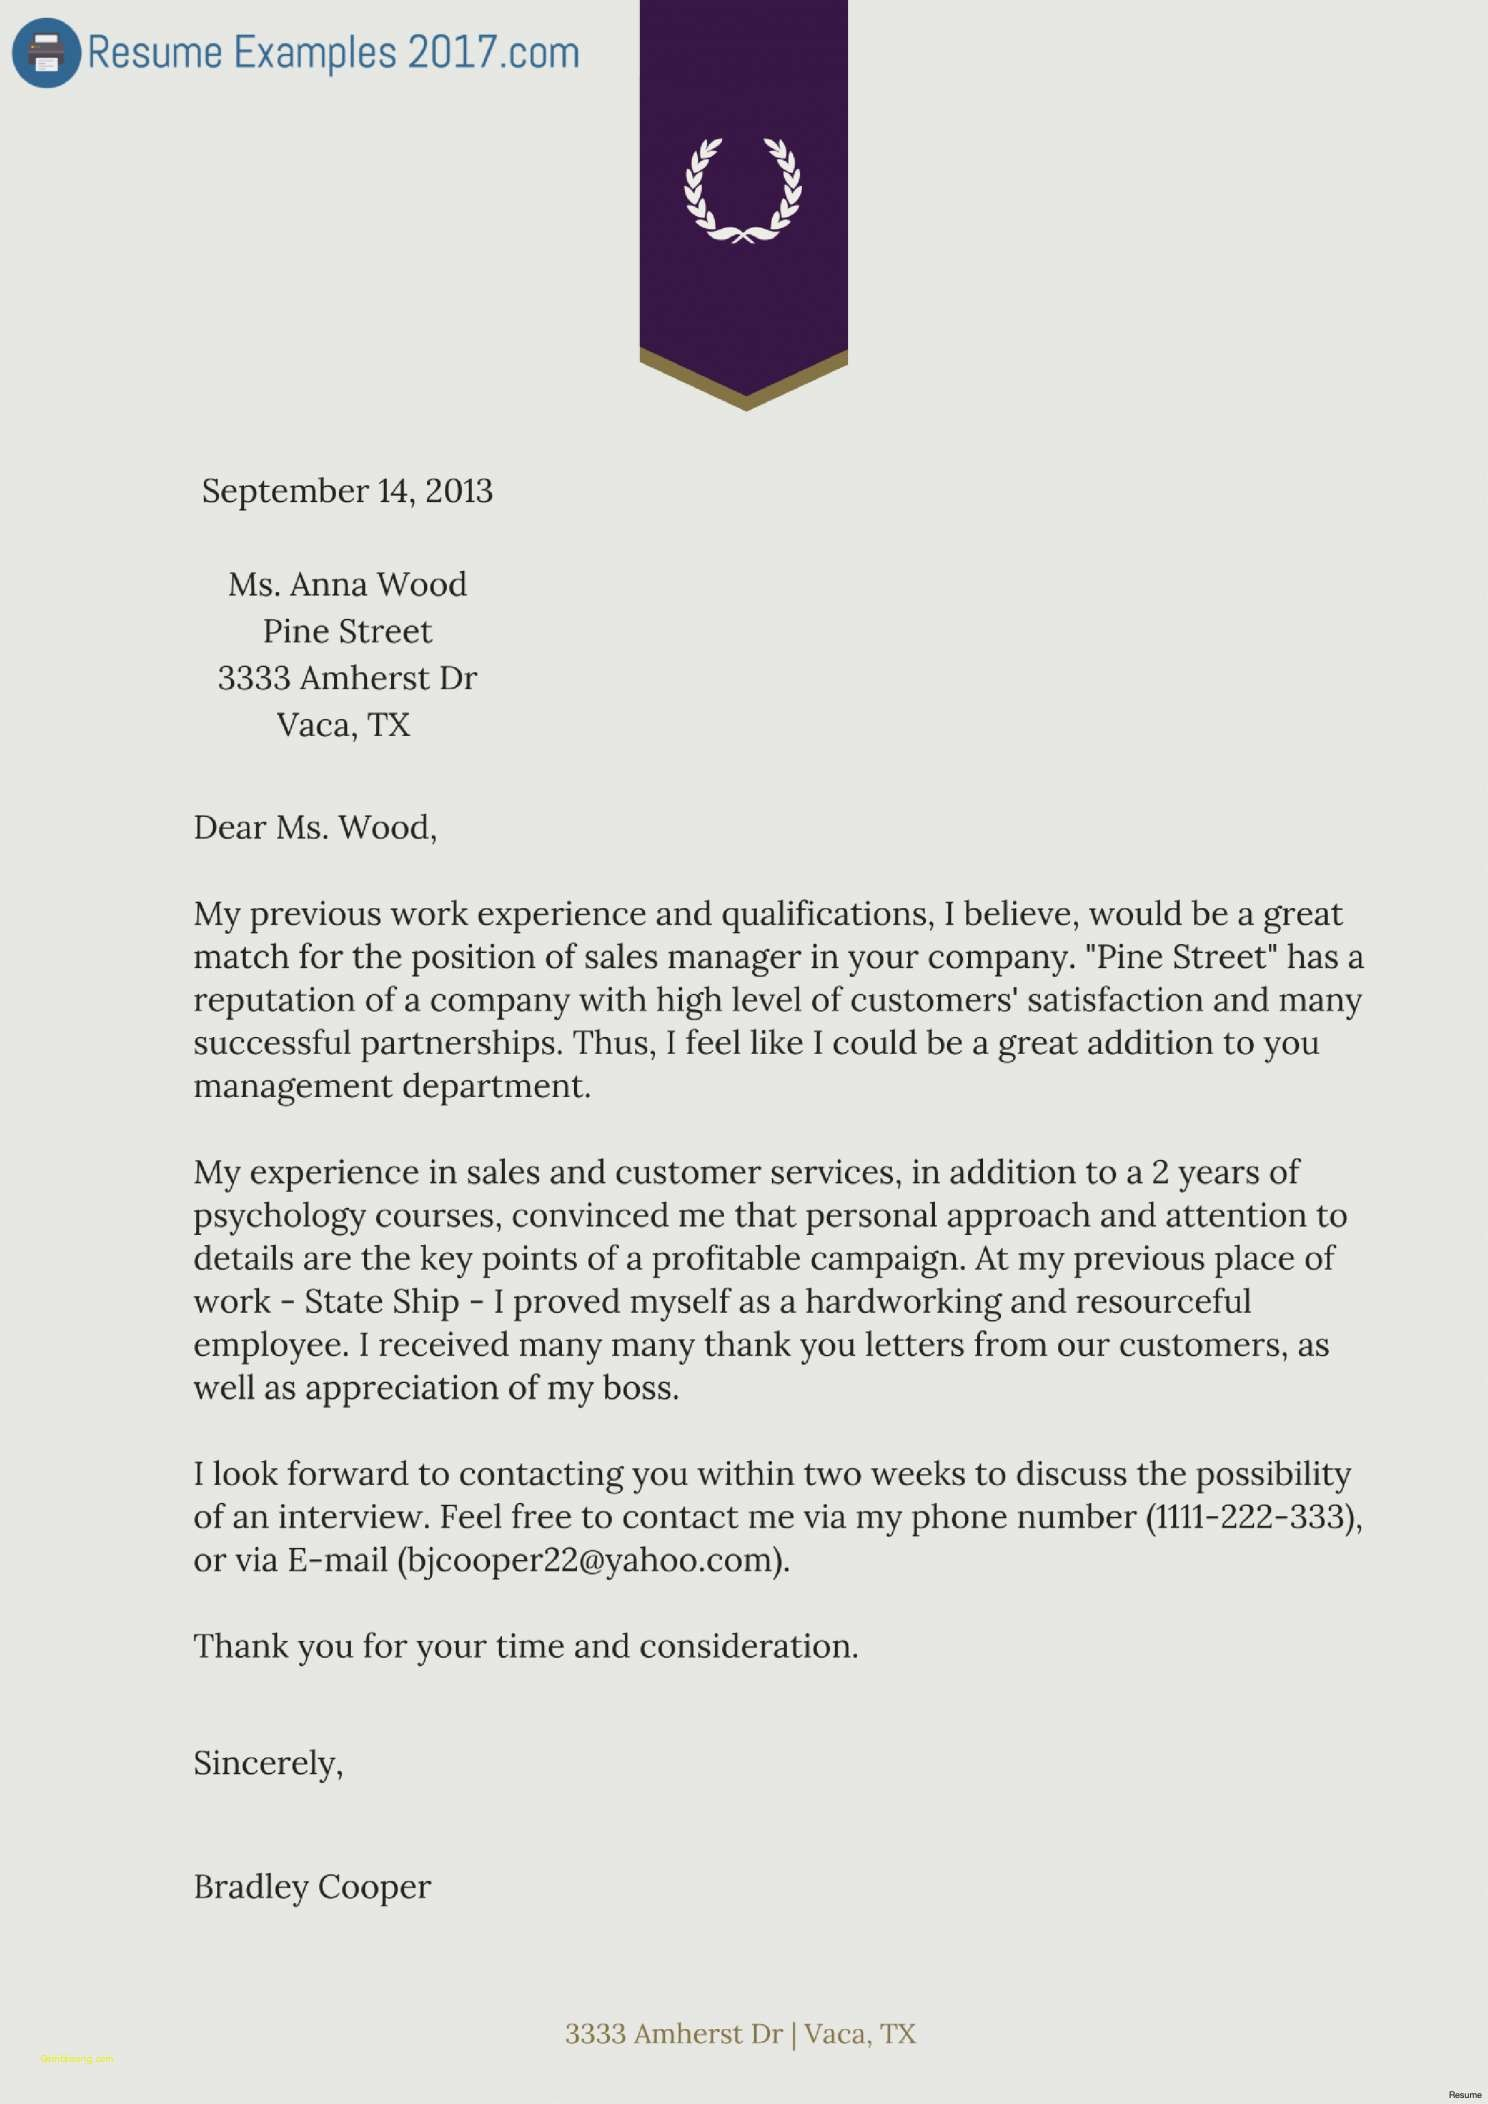 Customer Satisfaction Letter Template - Free Acting Resume Template Lovely Acting Cover Letter Examples